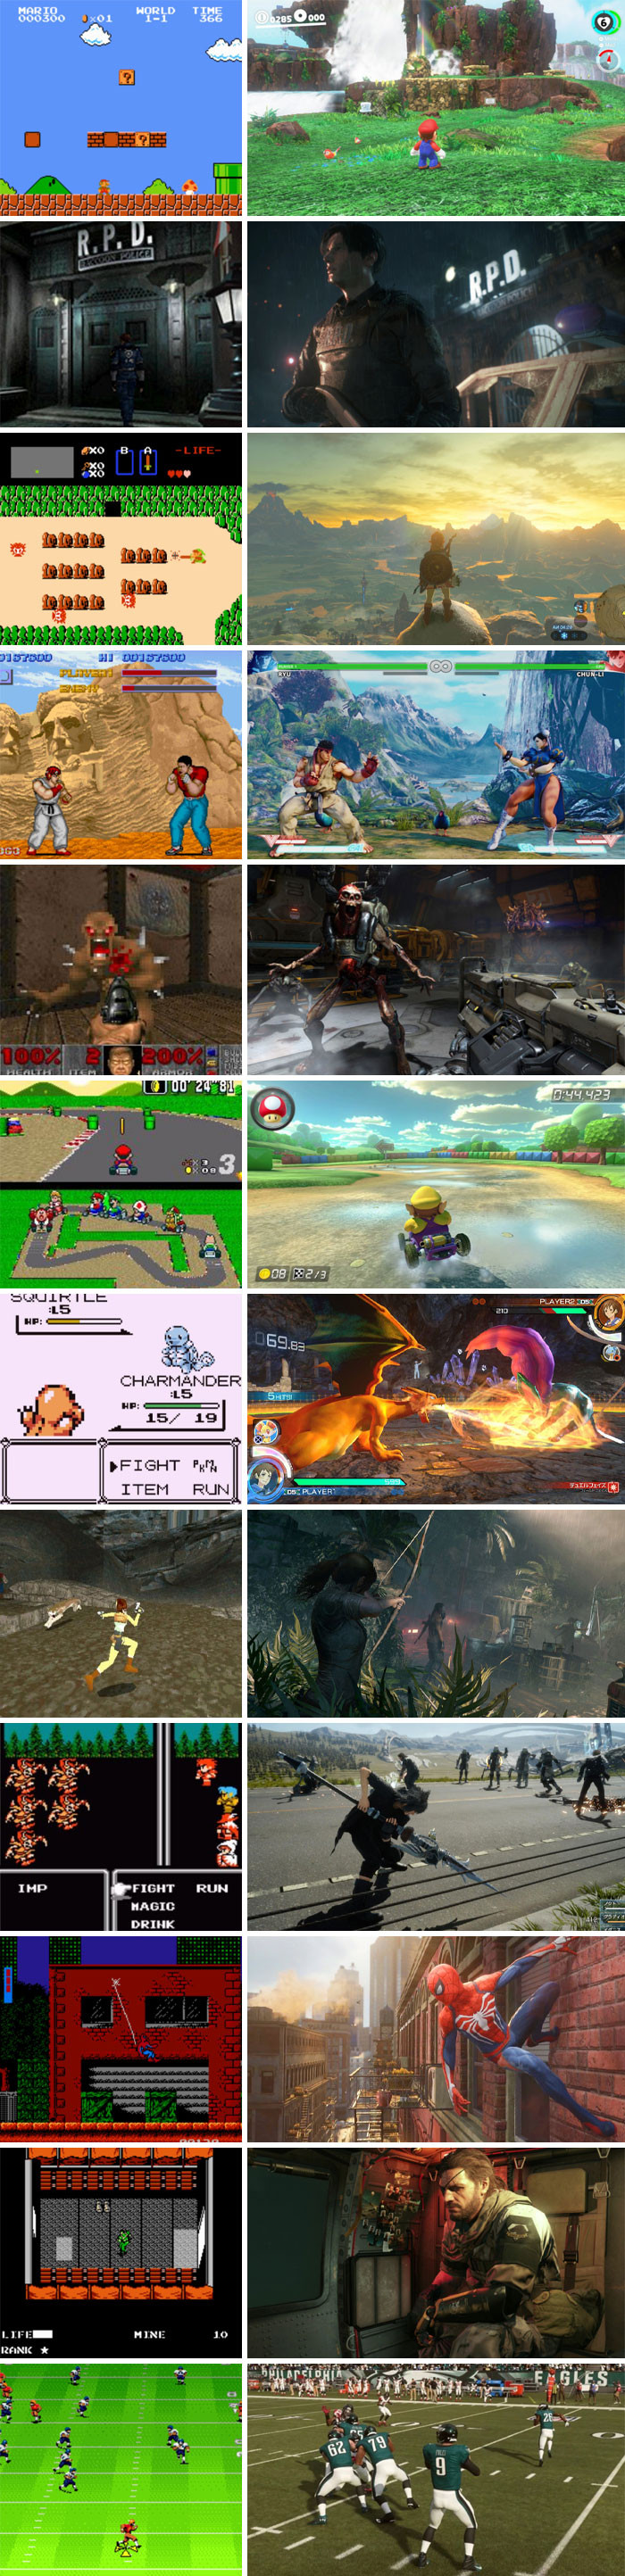 Video Game Graphics: Then And Now